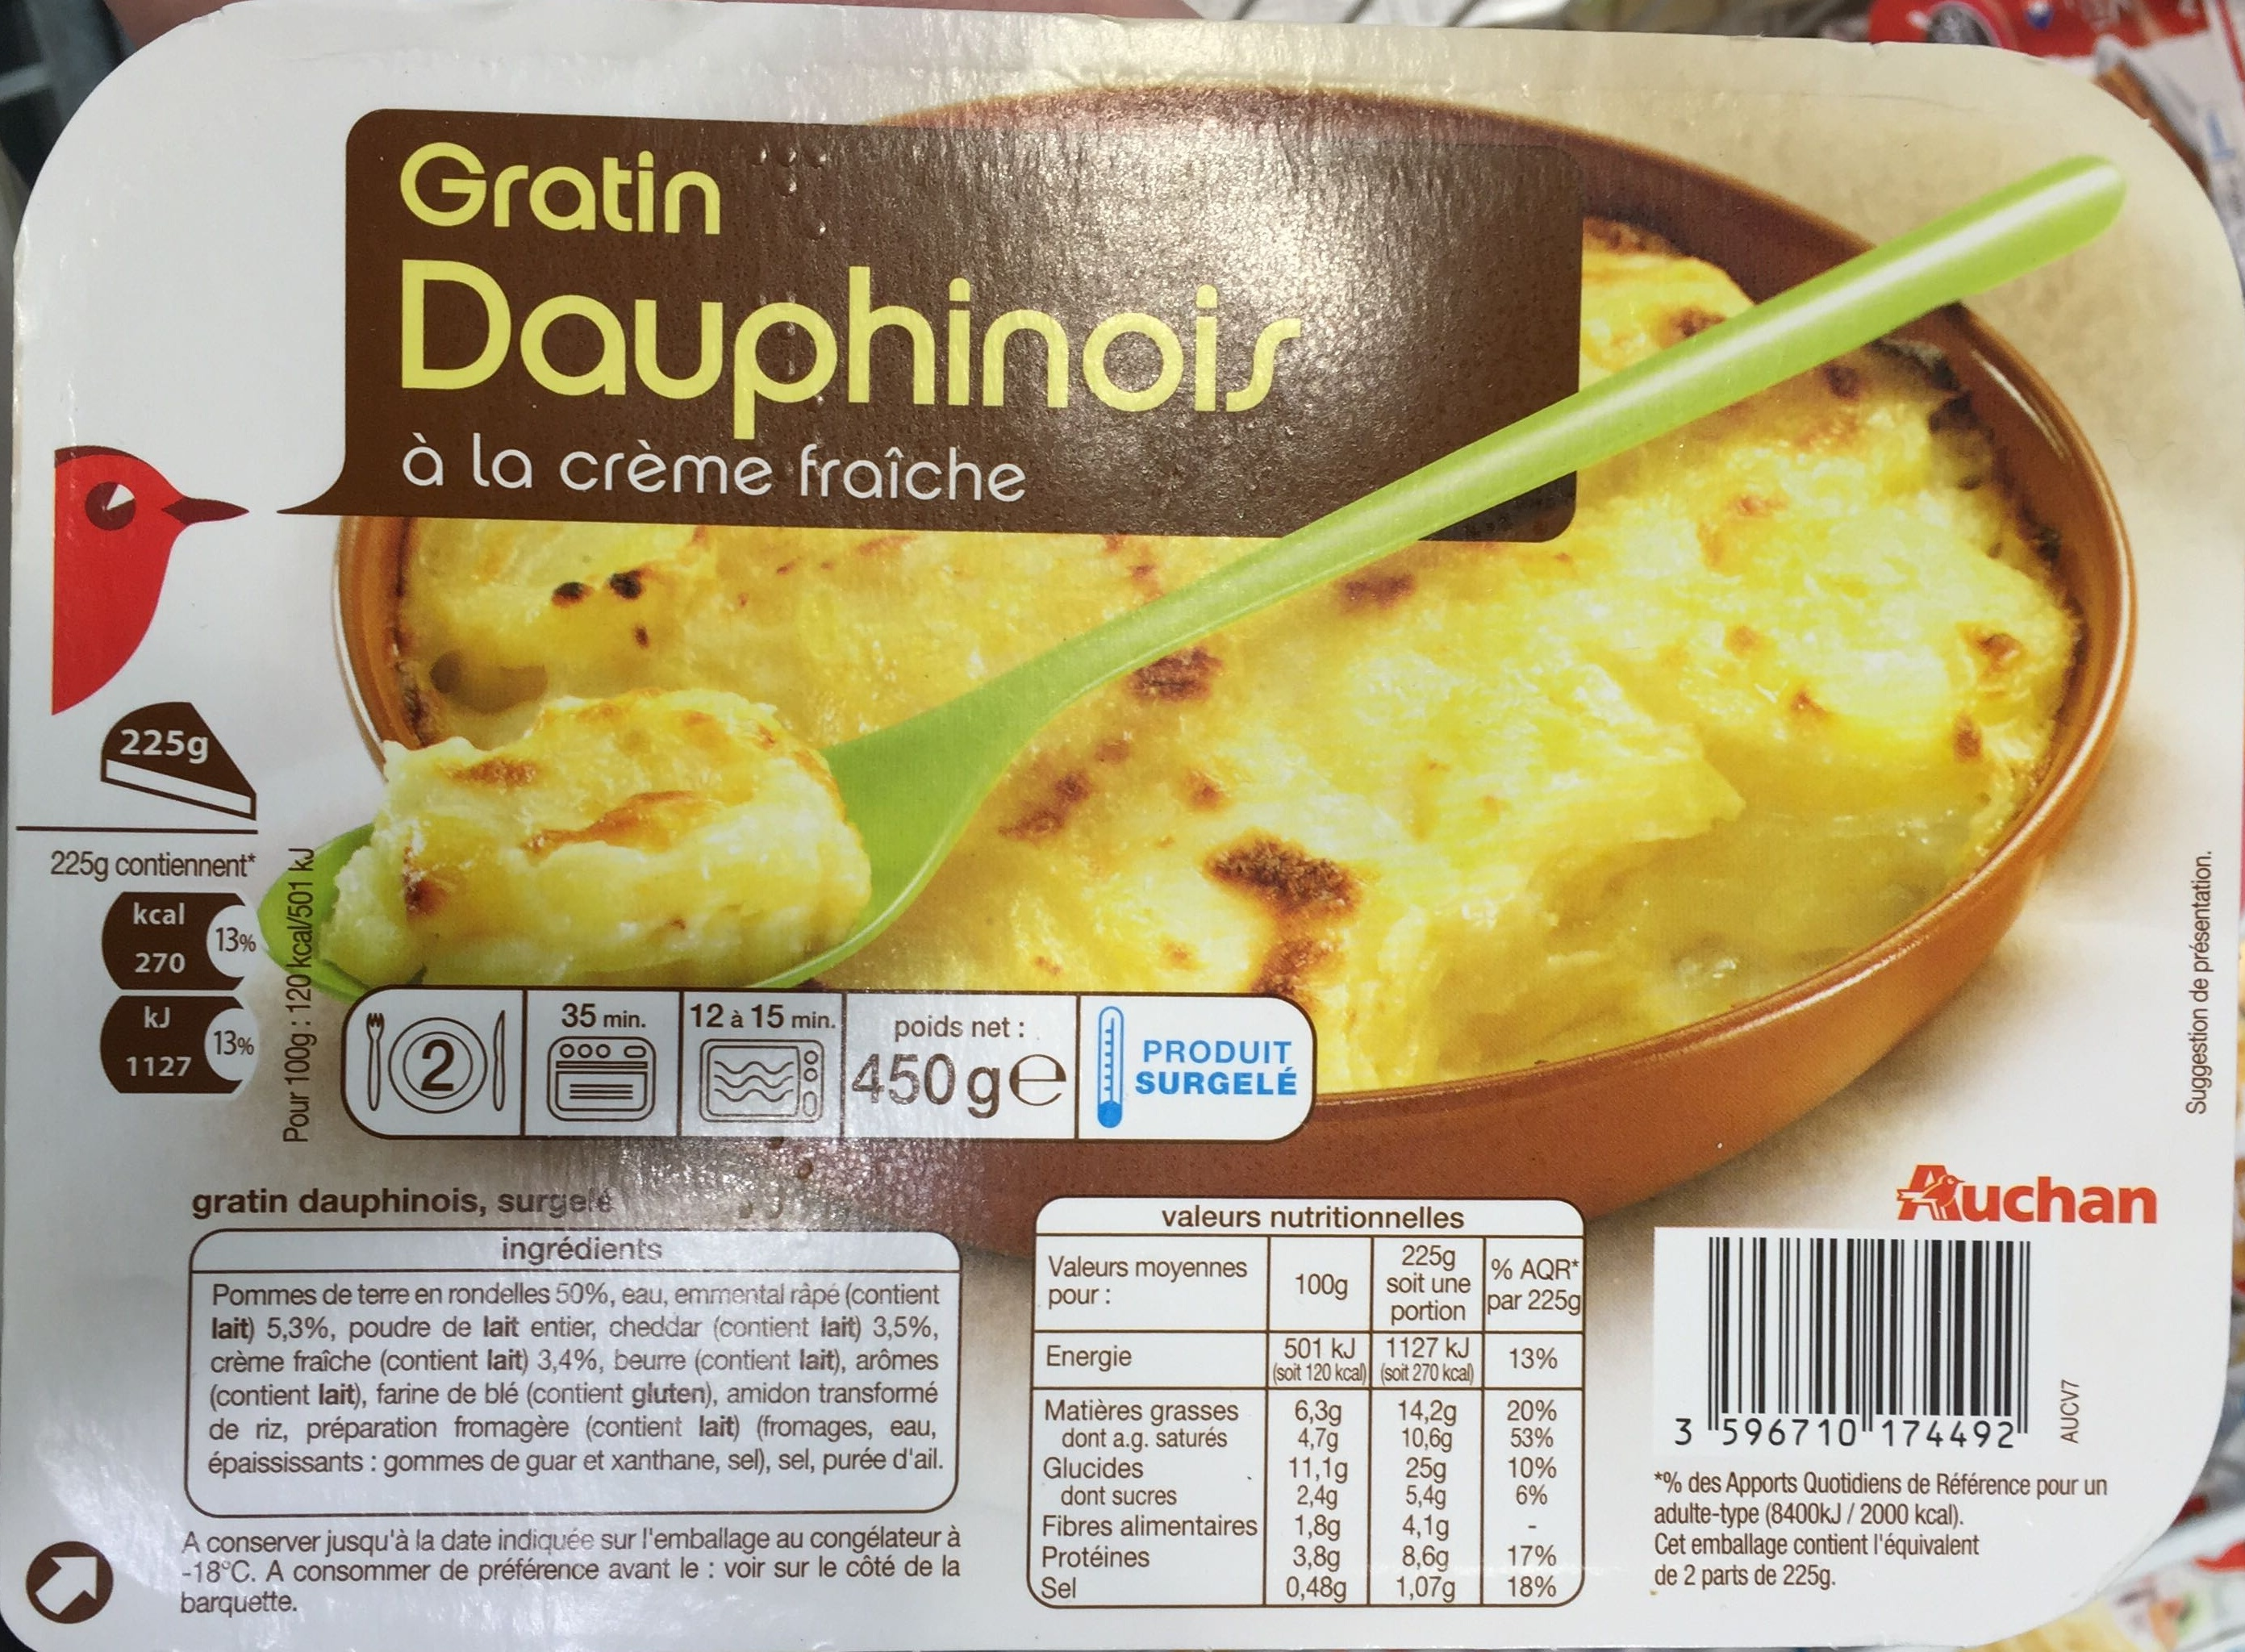 gratin dauphinois la cr me fra che surgel auchan 450 g. Black Bedroom Furniture Sets. Home Design Ideas